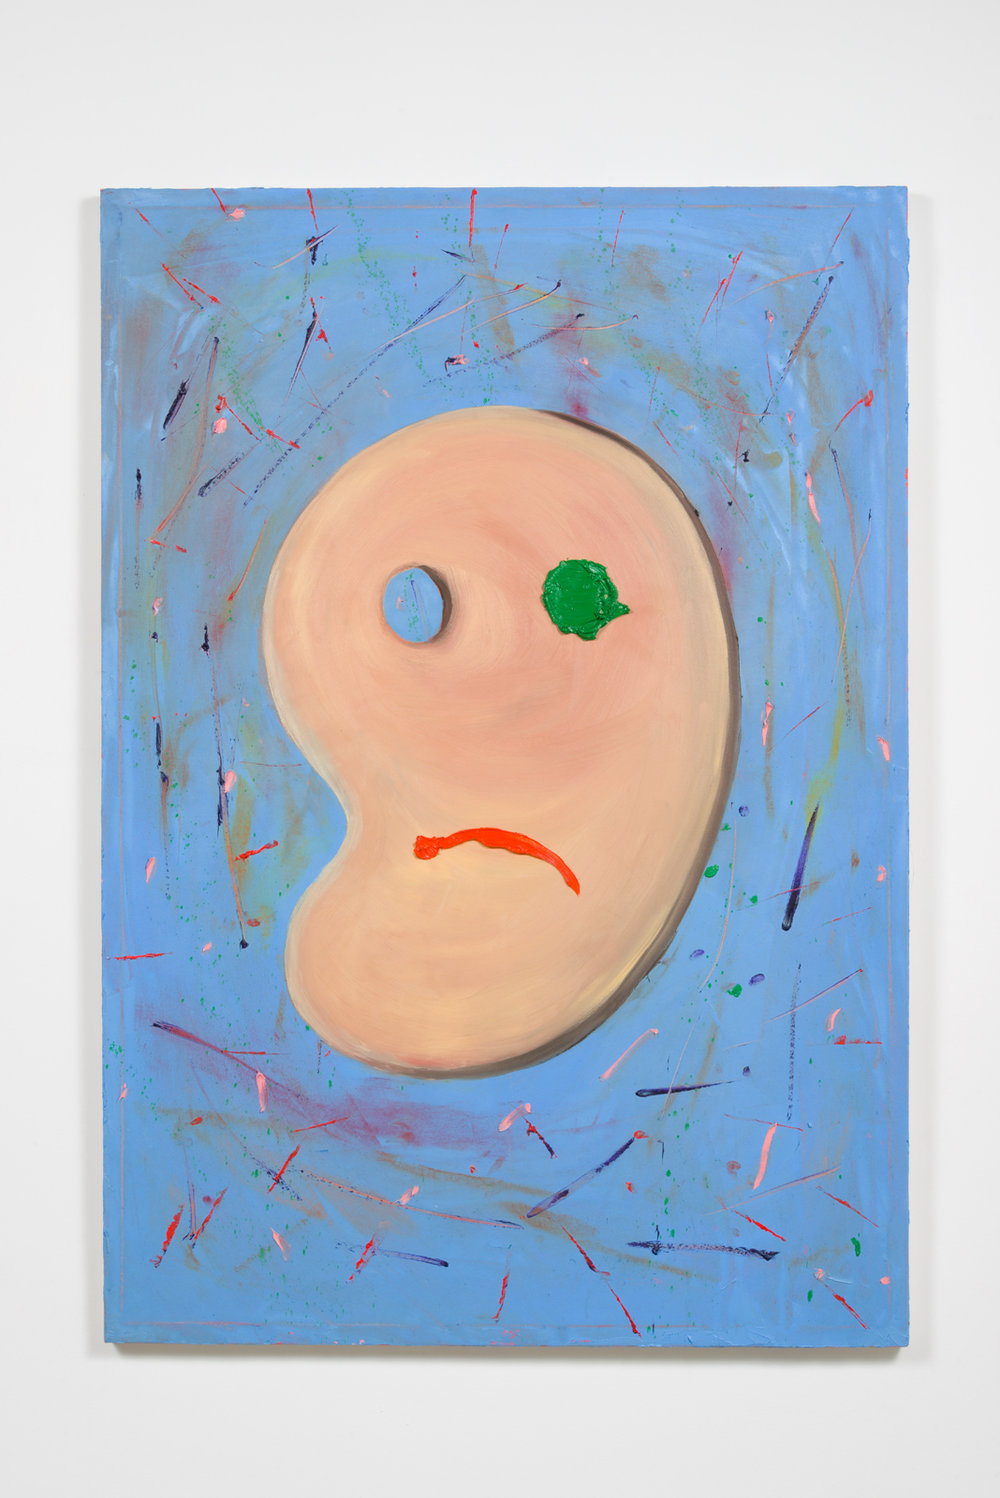 Country Sad Palette Man, 2017  Oil on canvas  66 x 46 x 1.5 inches